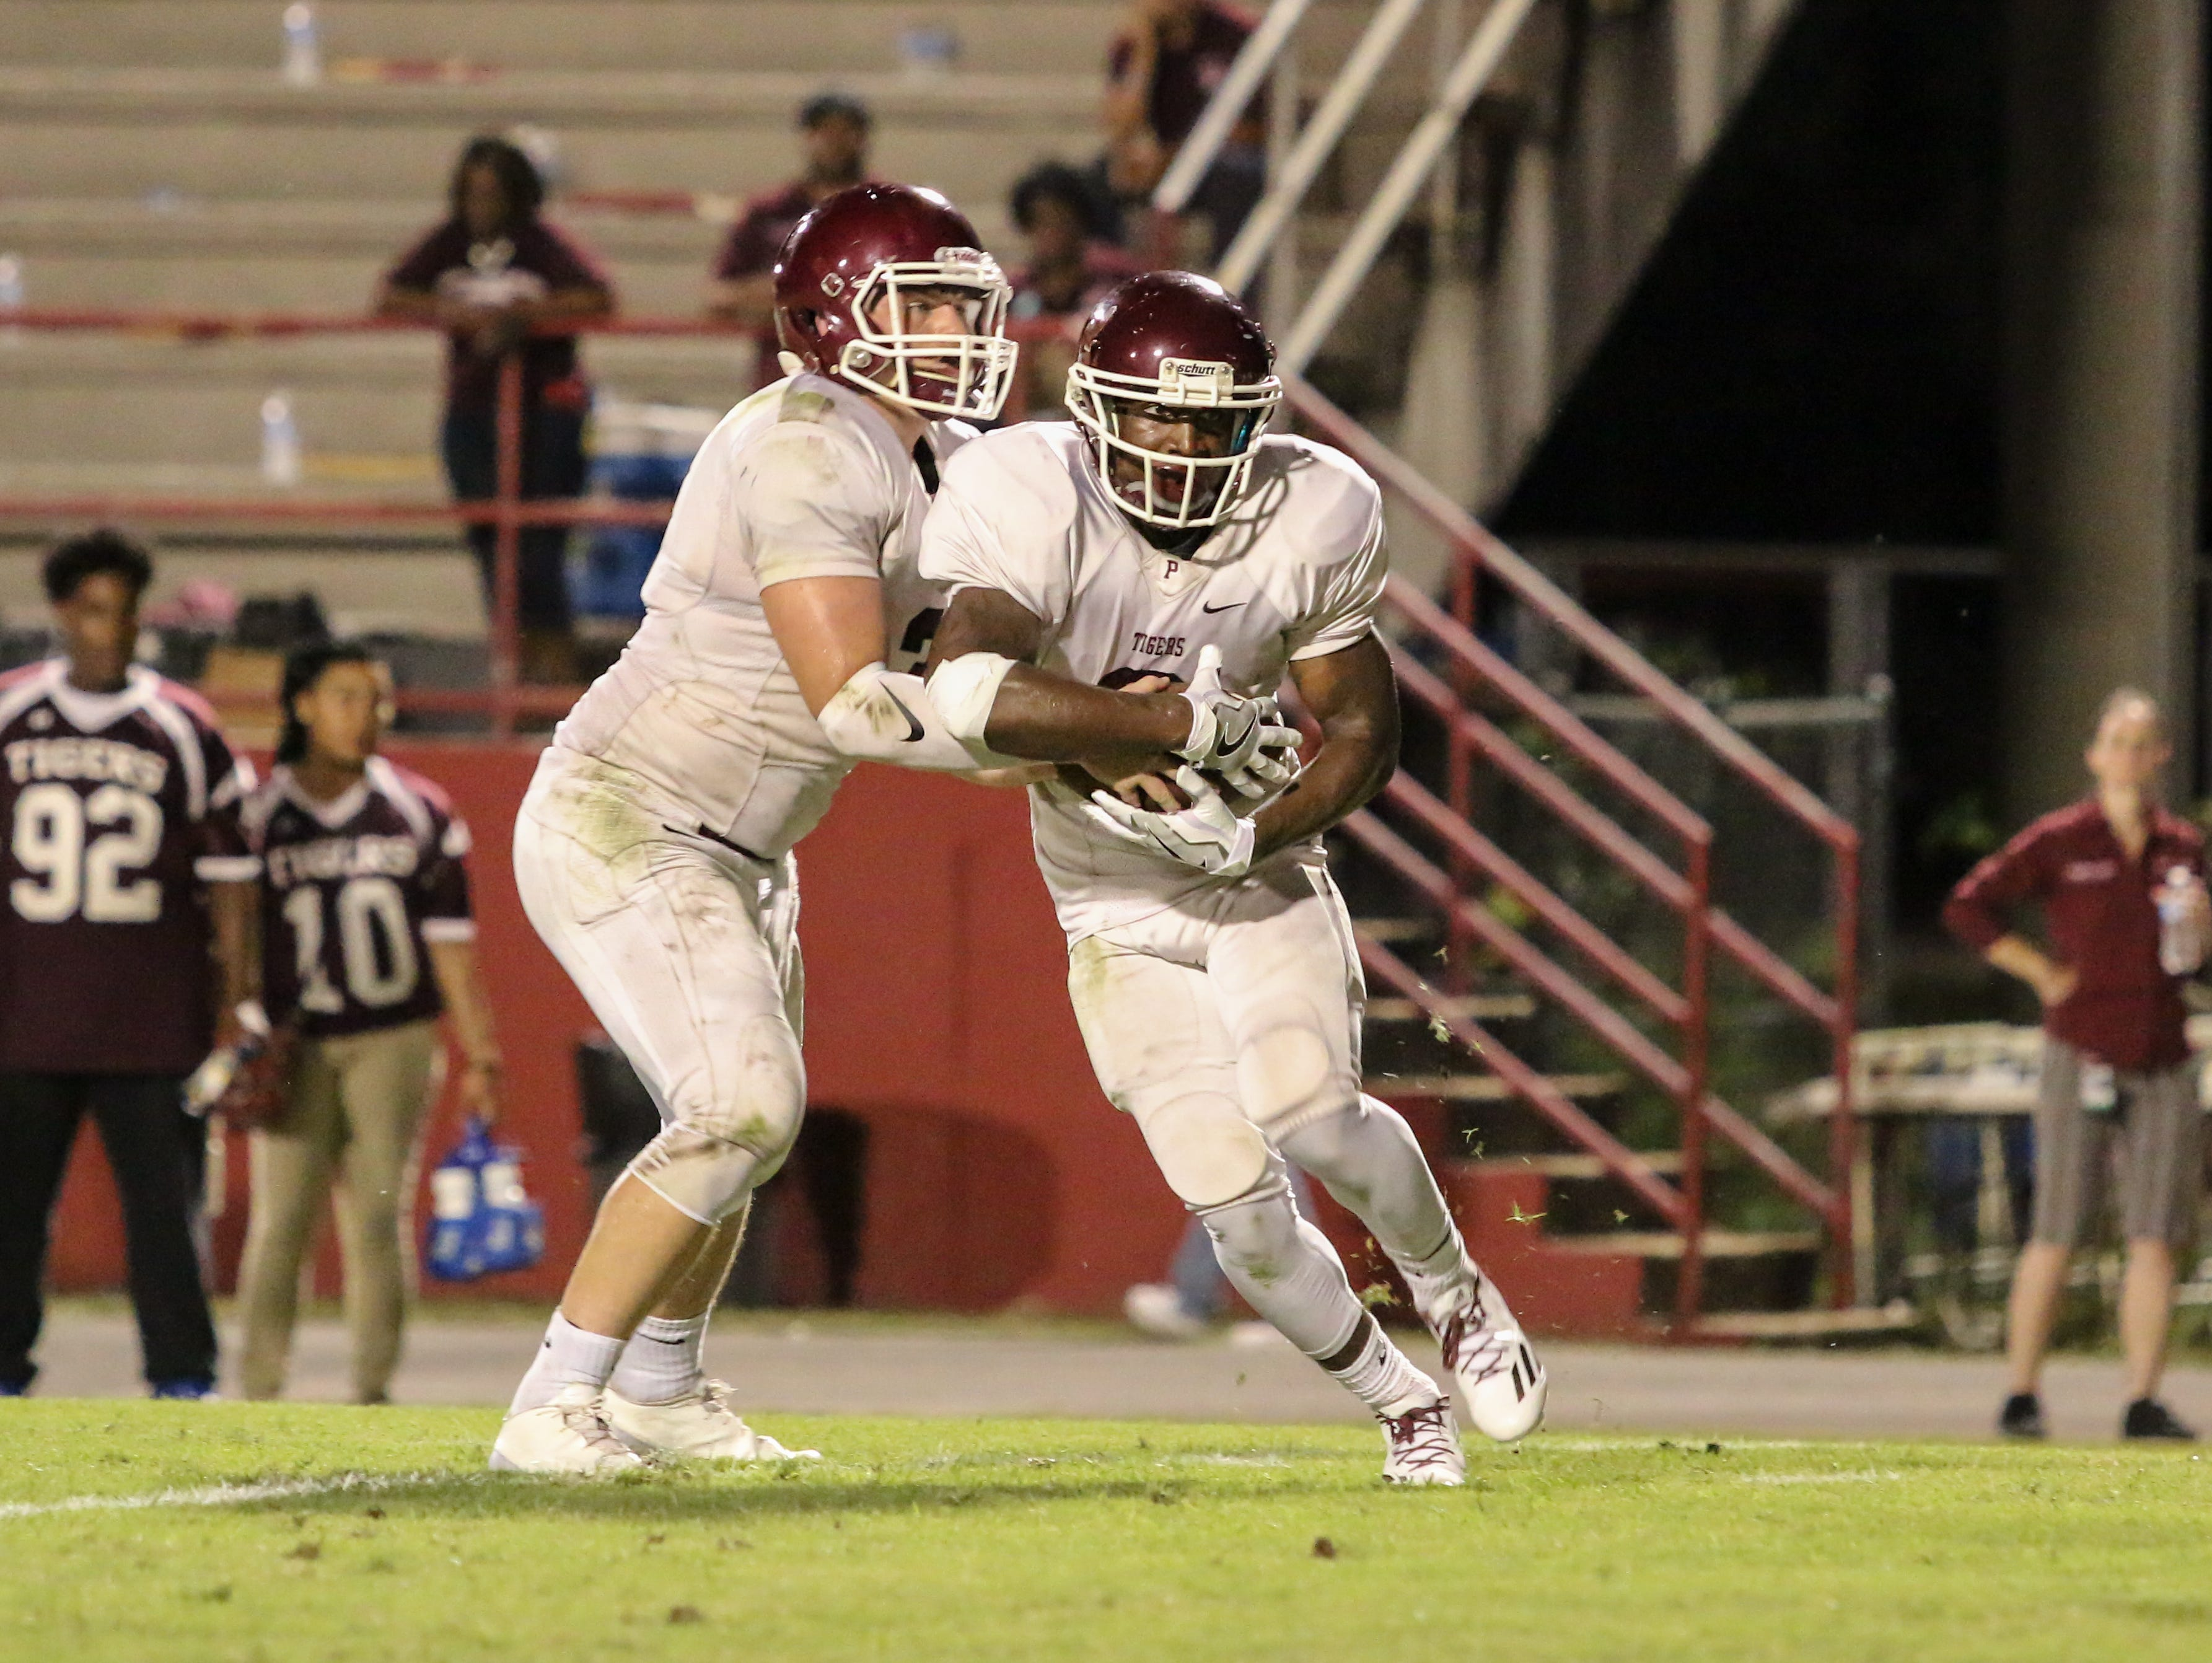 Pensacola's Tyrese Albritton (2) takes the handoff from quarterback Ashton Stephens (3) Friday night at Pine Forest High School.